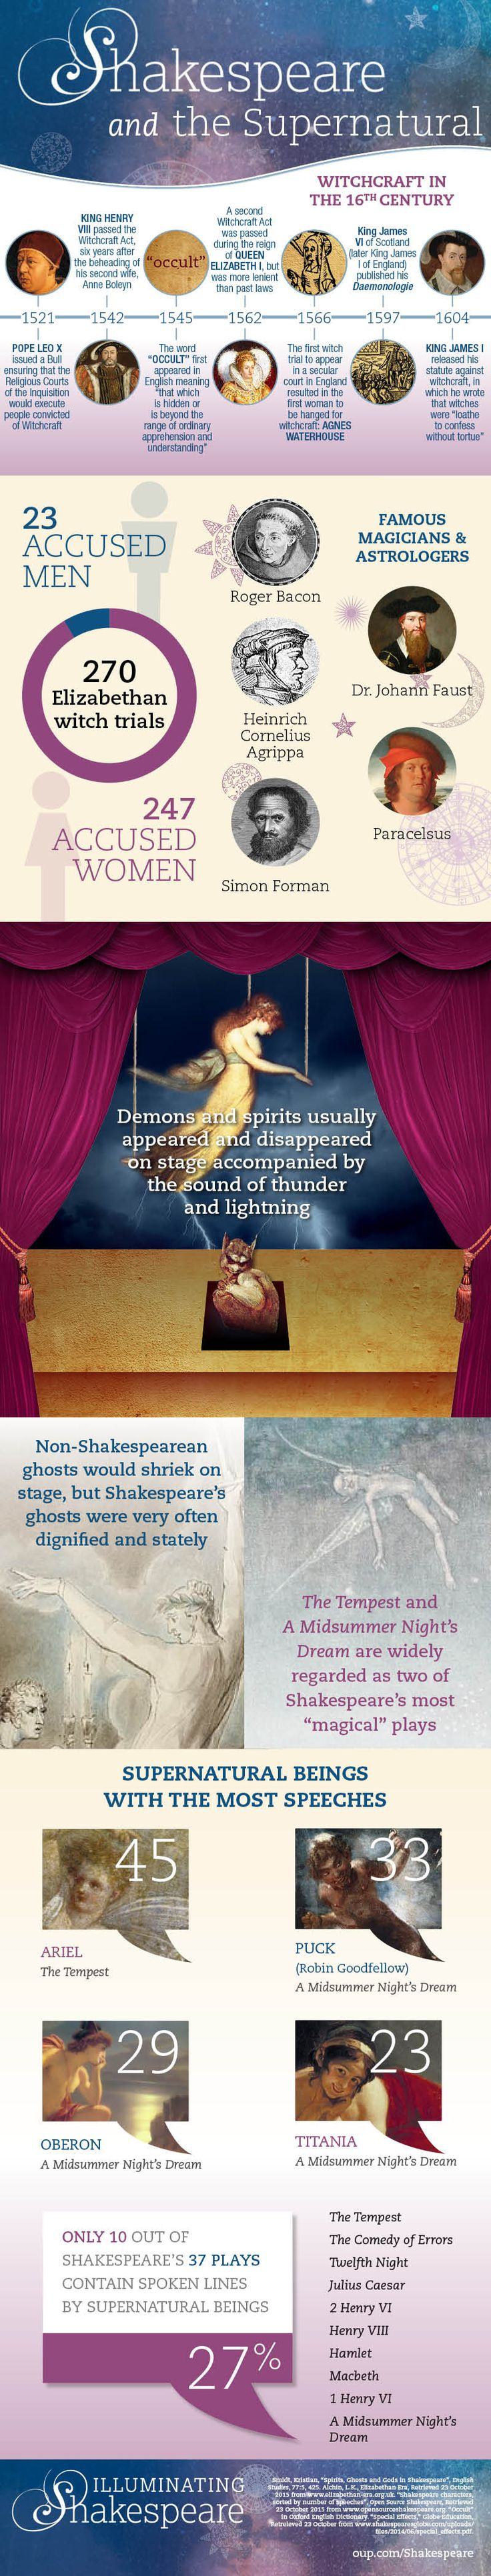 The supernatural in Shakespeare [infographic